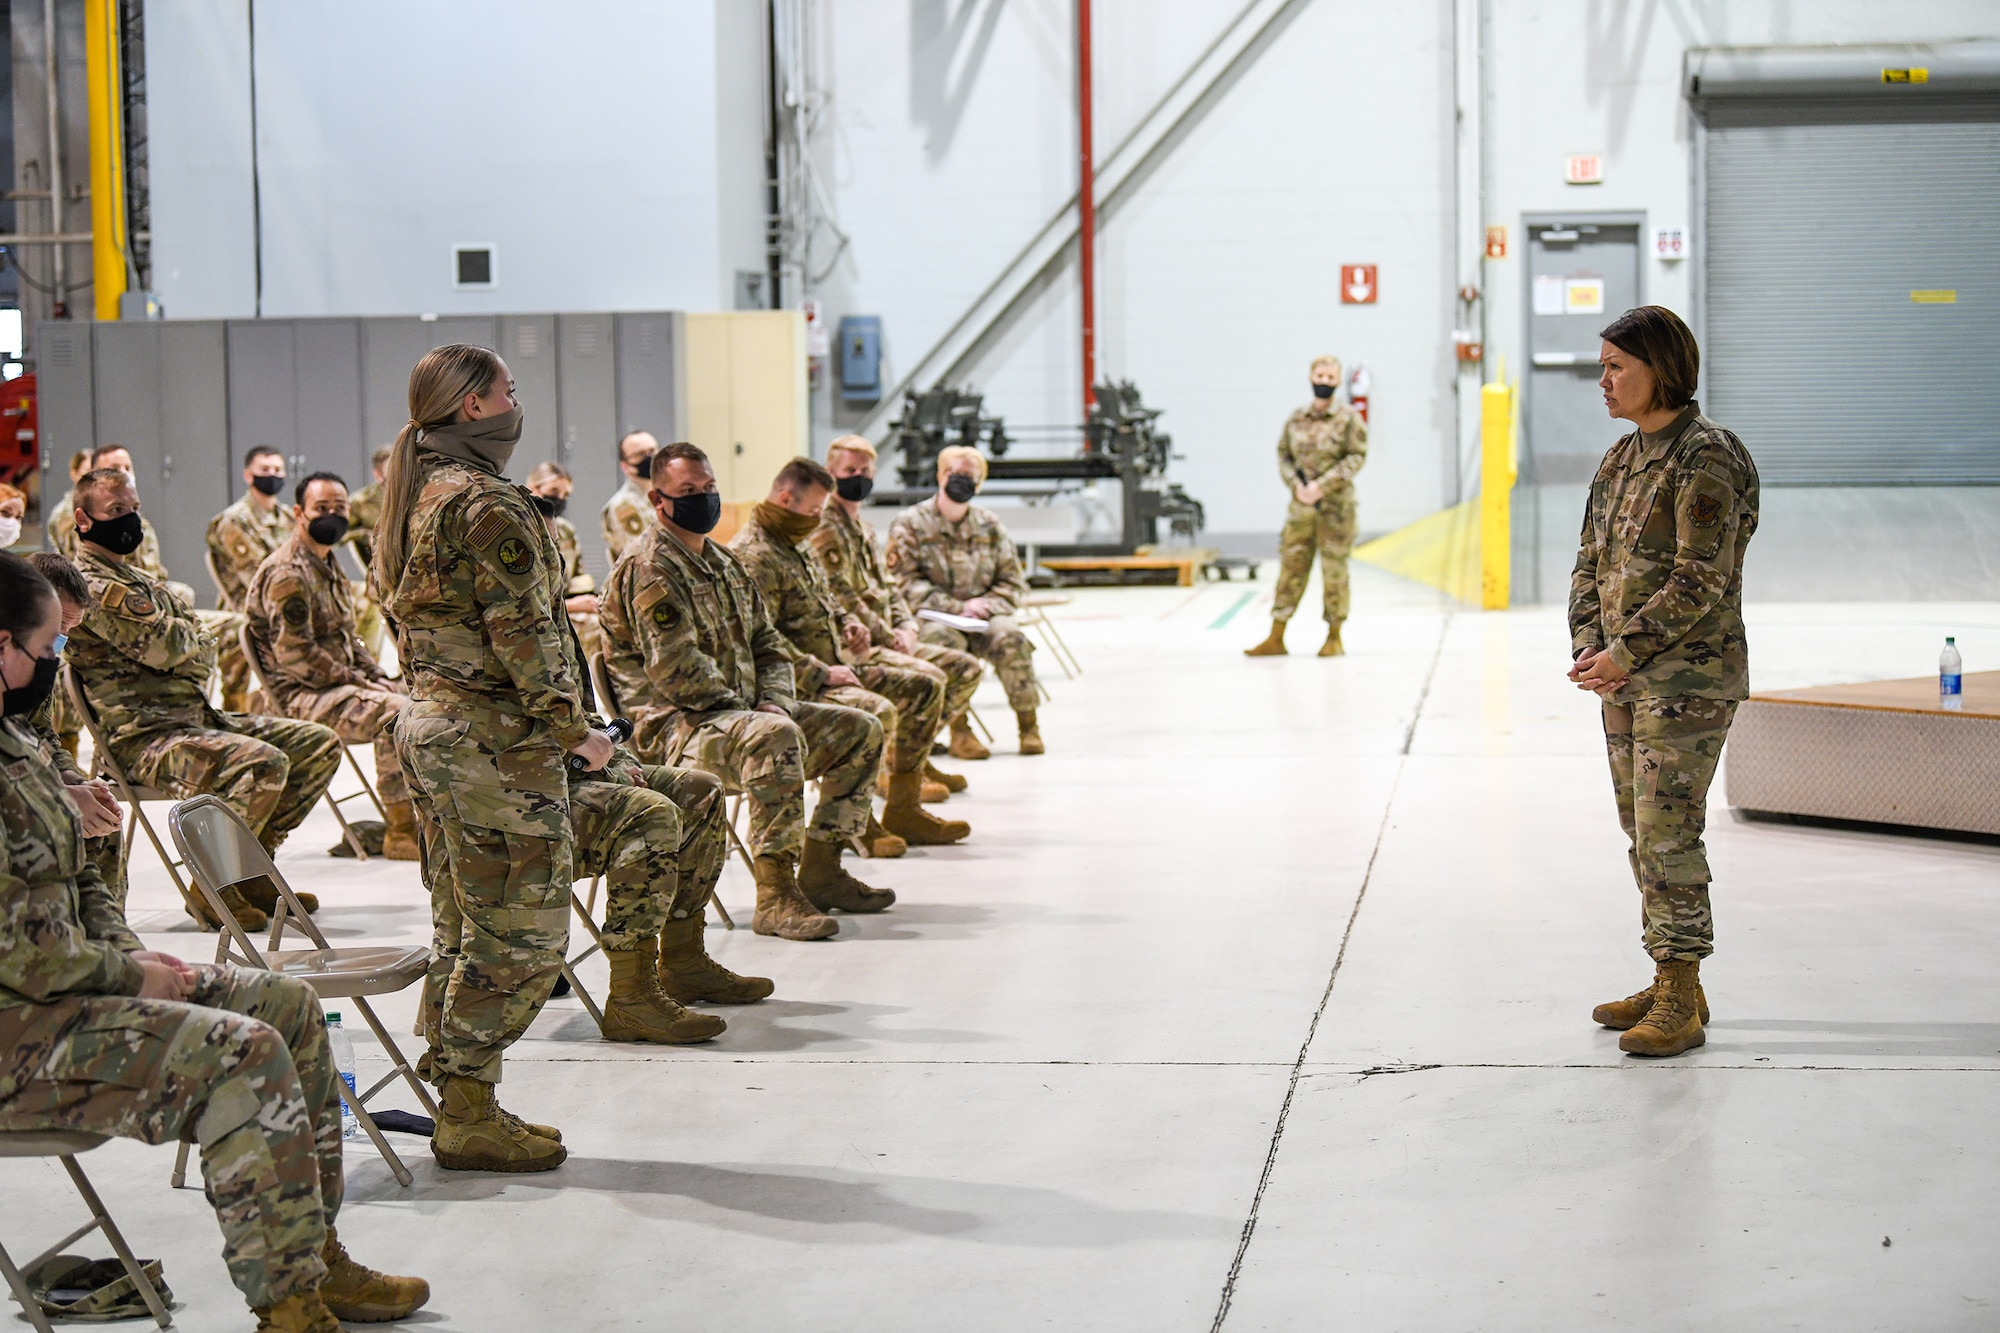 Chief Master Sgt. of the Air Force JoAnne S. Bass holds an enlisted call with 445th Airlift Wing Airmen during her visit to Wright-Patterson Air Force Base, Ohio Oct. 2, 2021.